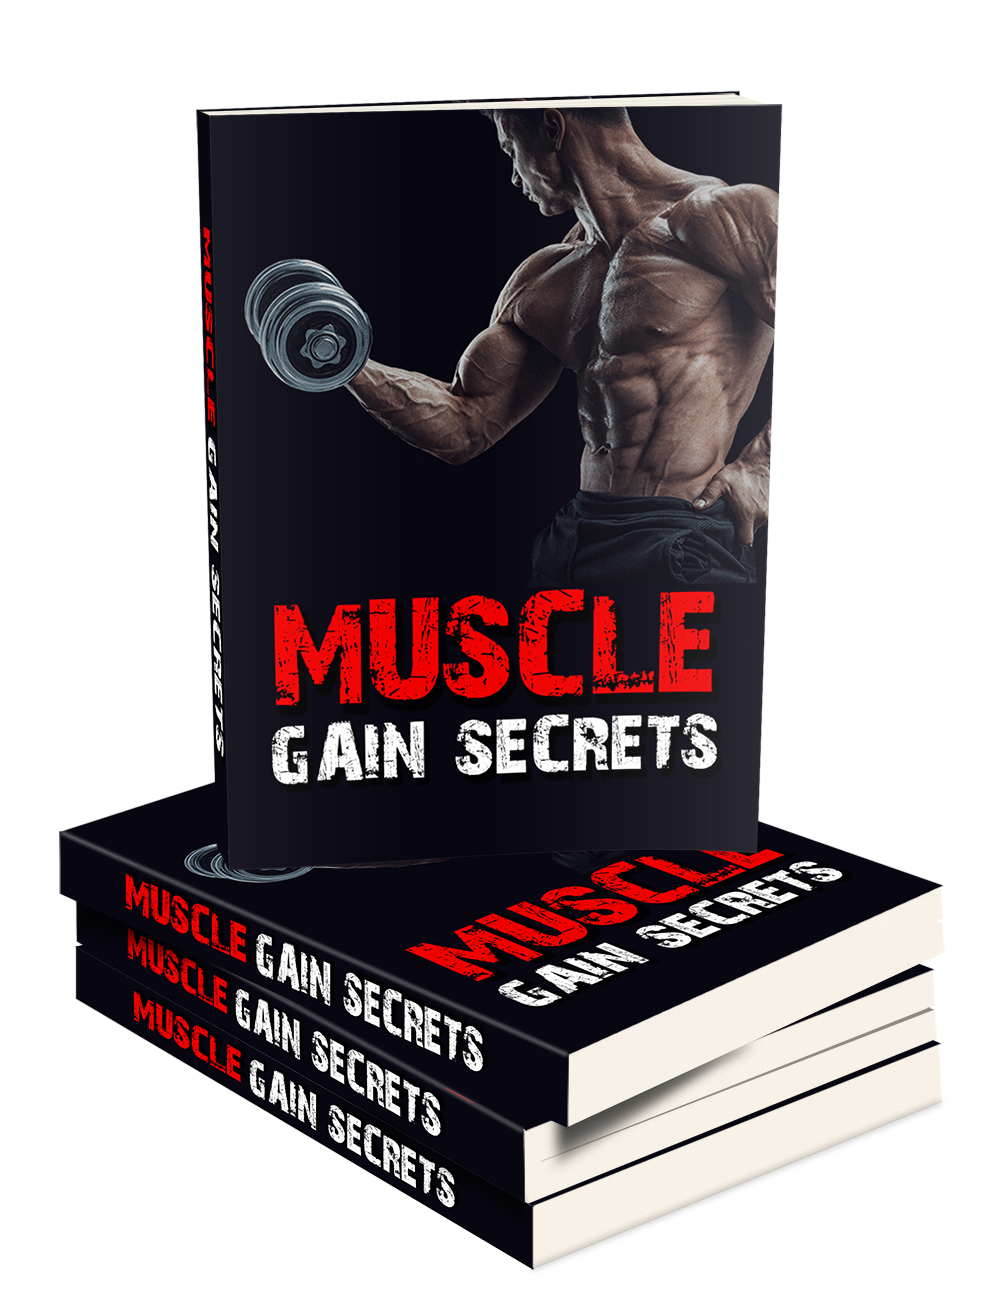 MMR Muscle Gain Secrets!